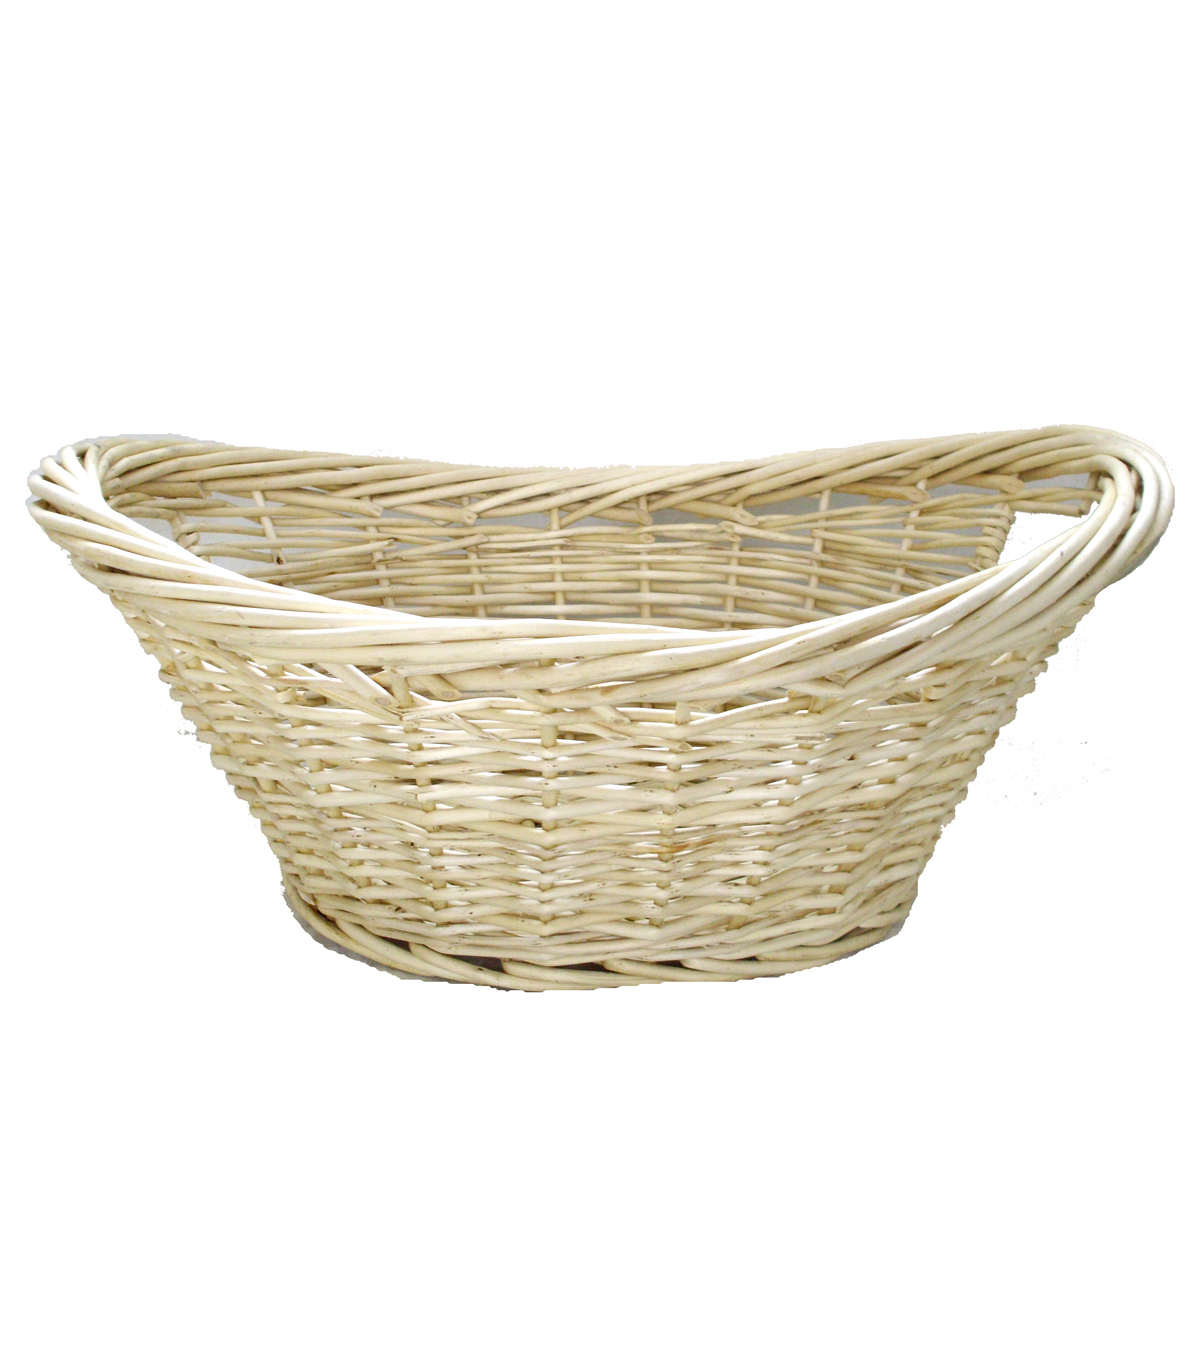 organizing essentials oval heavy rim willow laundry basket - Wicker Laundry Basket